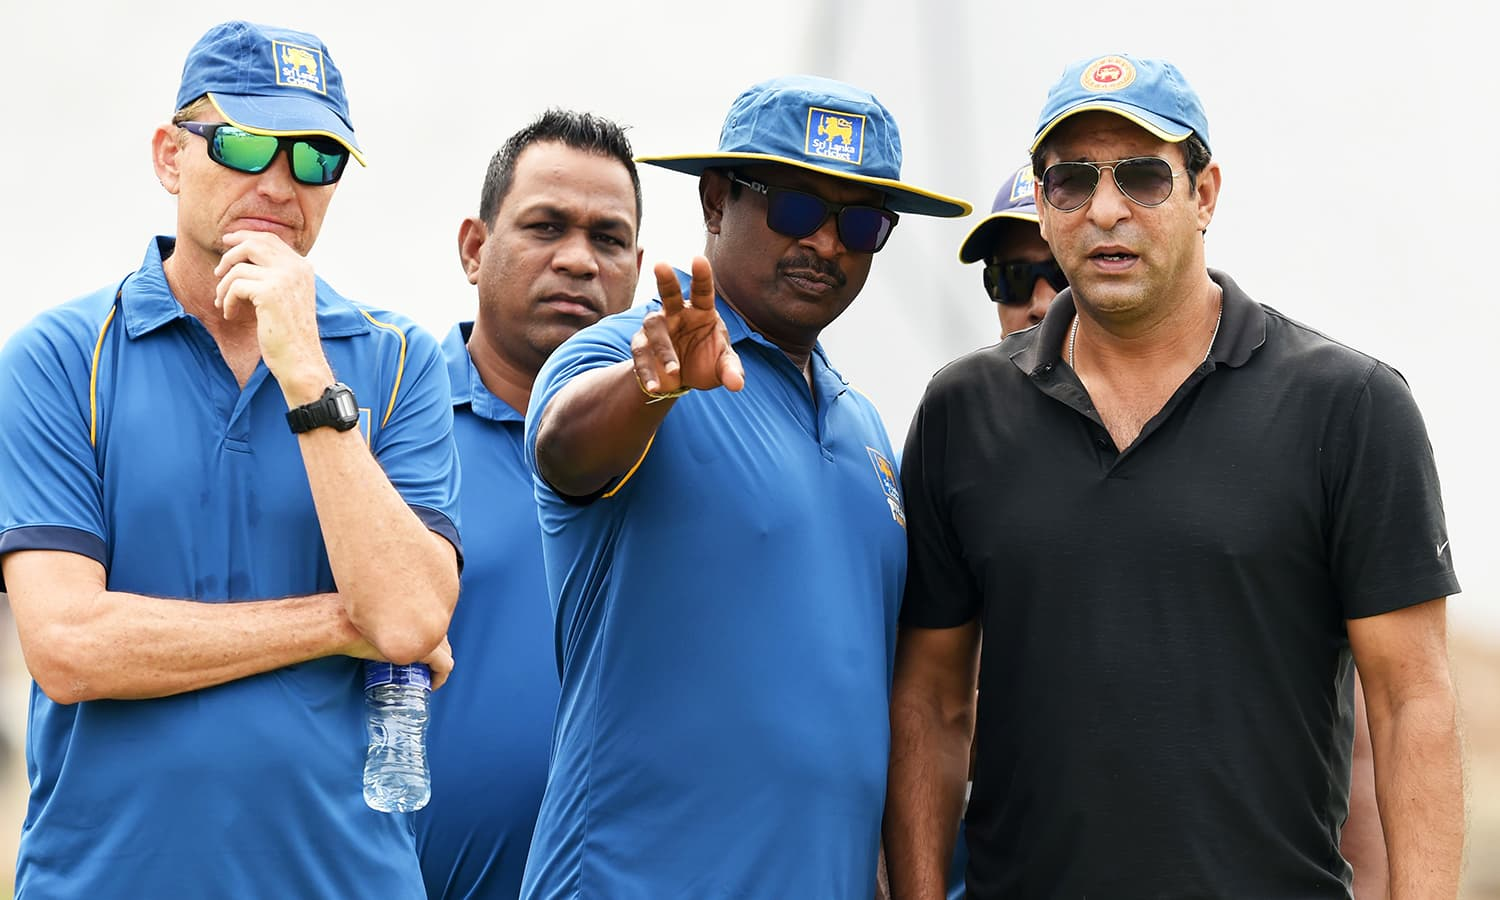 Sri Lanka's cricket coach Graham Ford and bowling coach Champaka Ramanayake speak with Wasim Akram during his first coaching session. -AFP